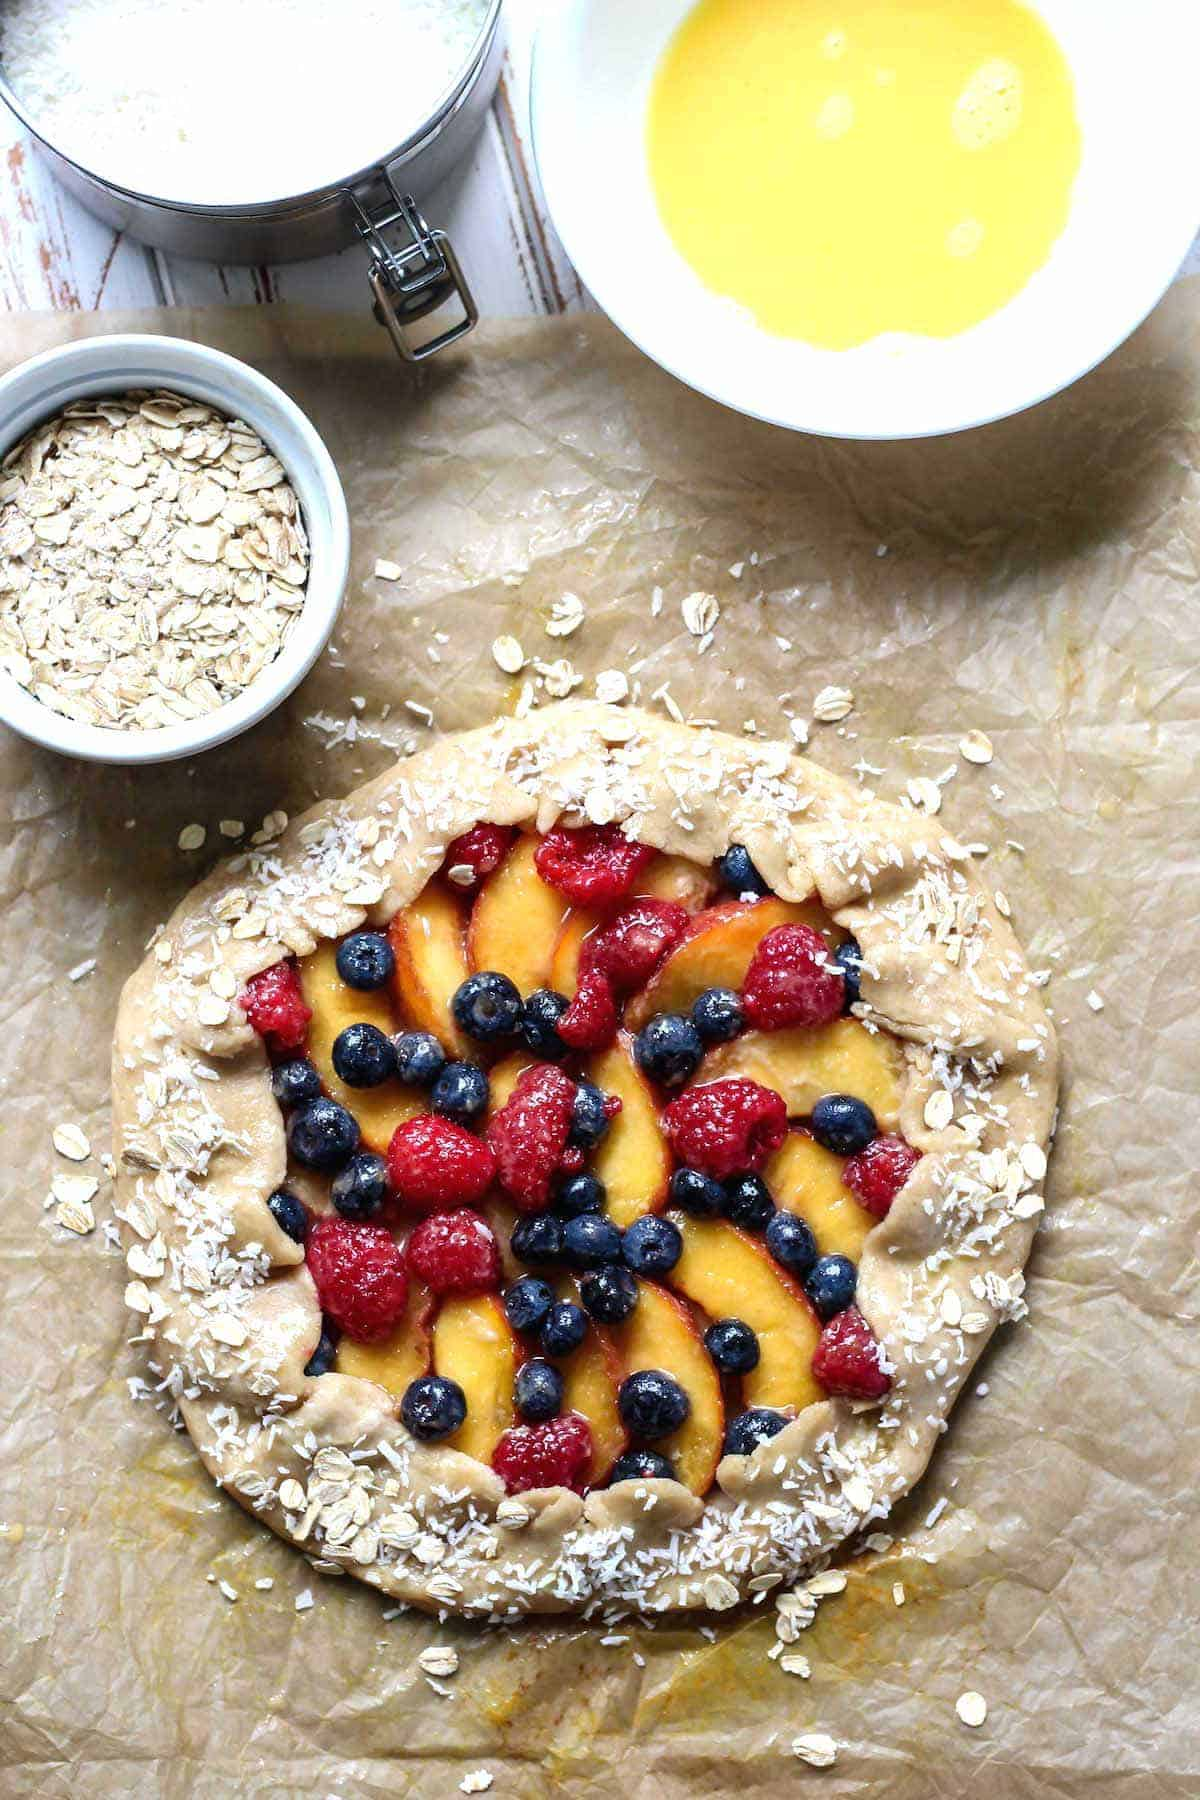 Use an egg wash on the crust to create the perfect crisp edge on this Whole Wheat Berry Peach Galette.